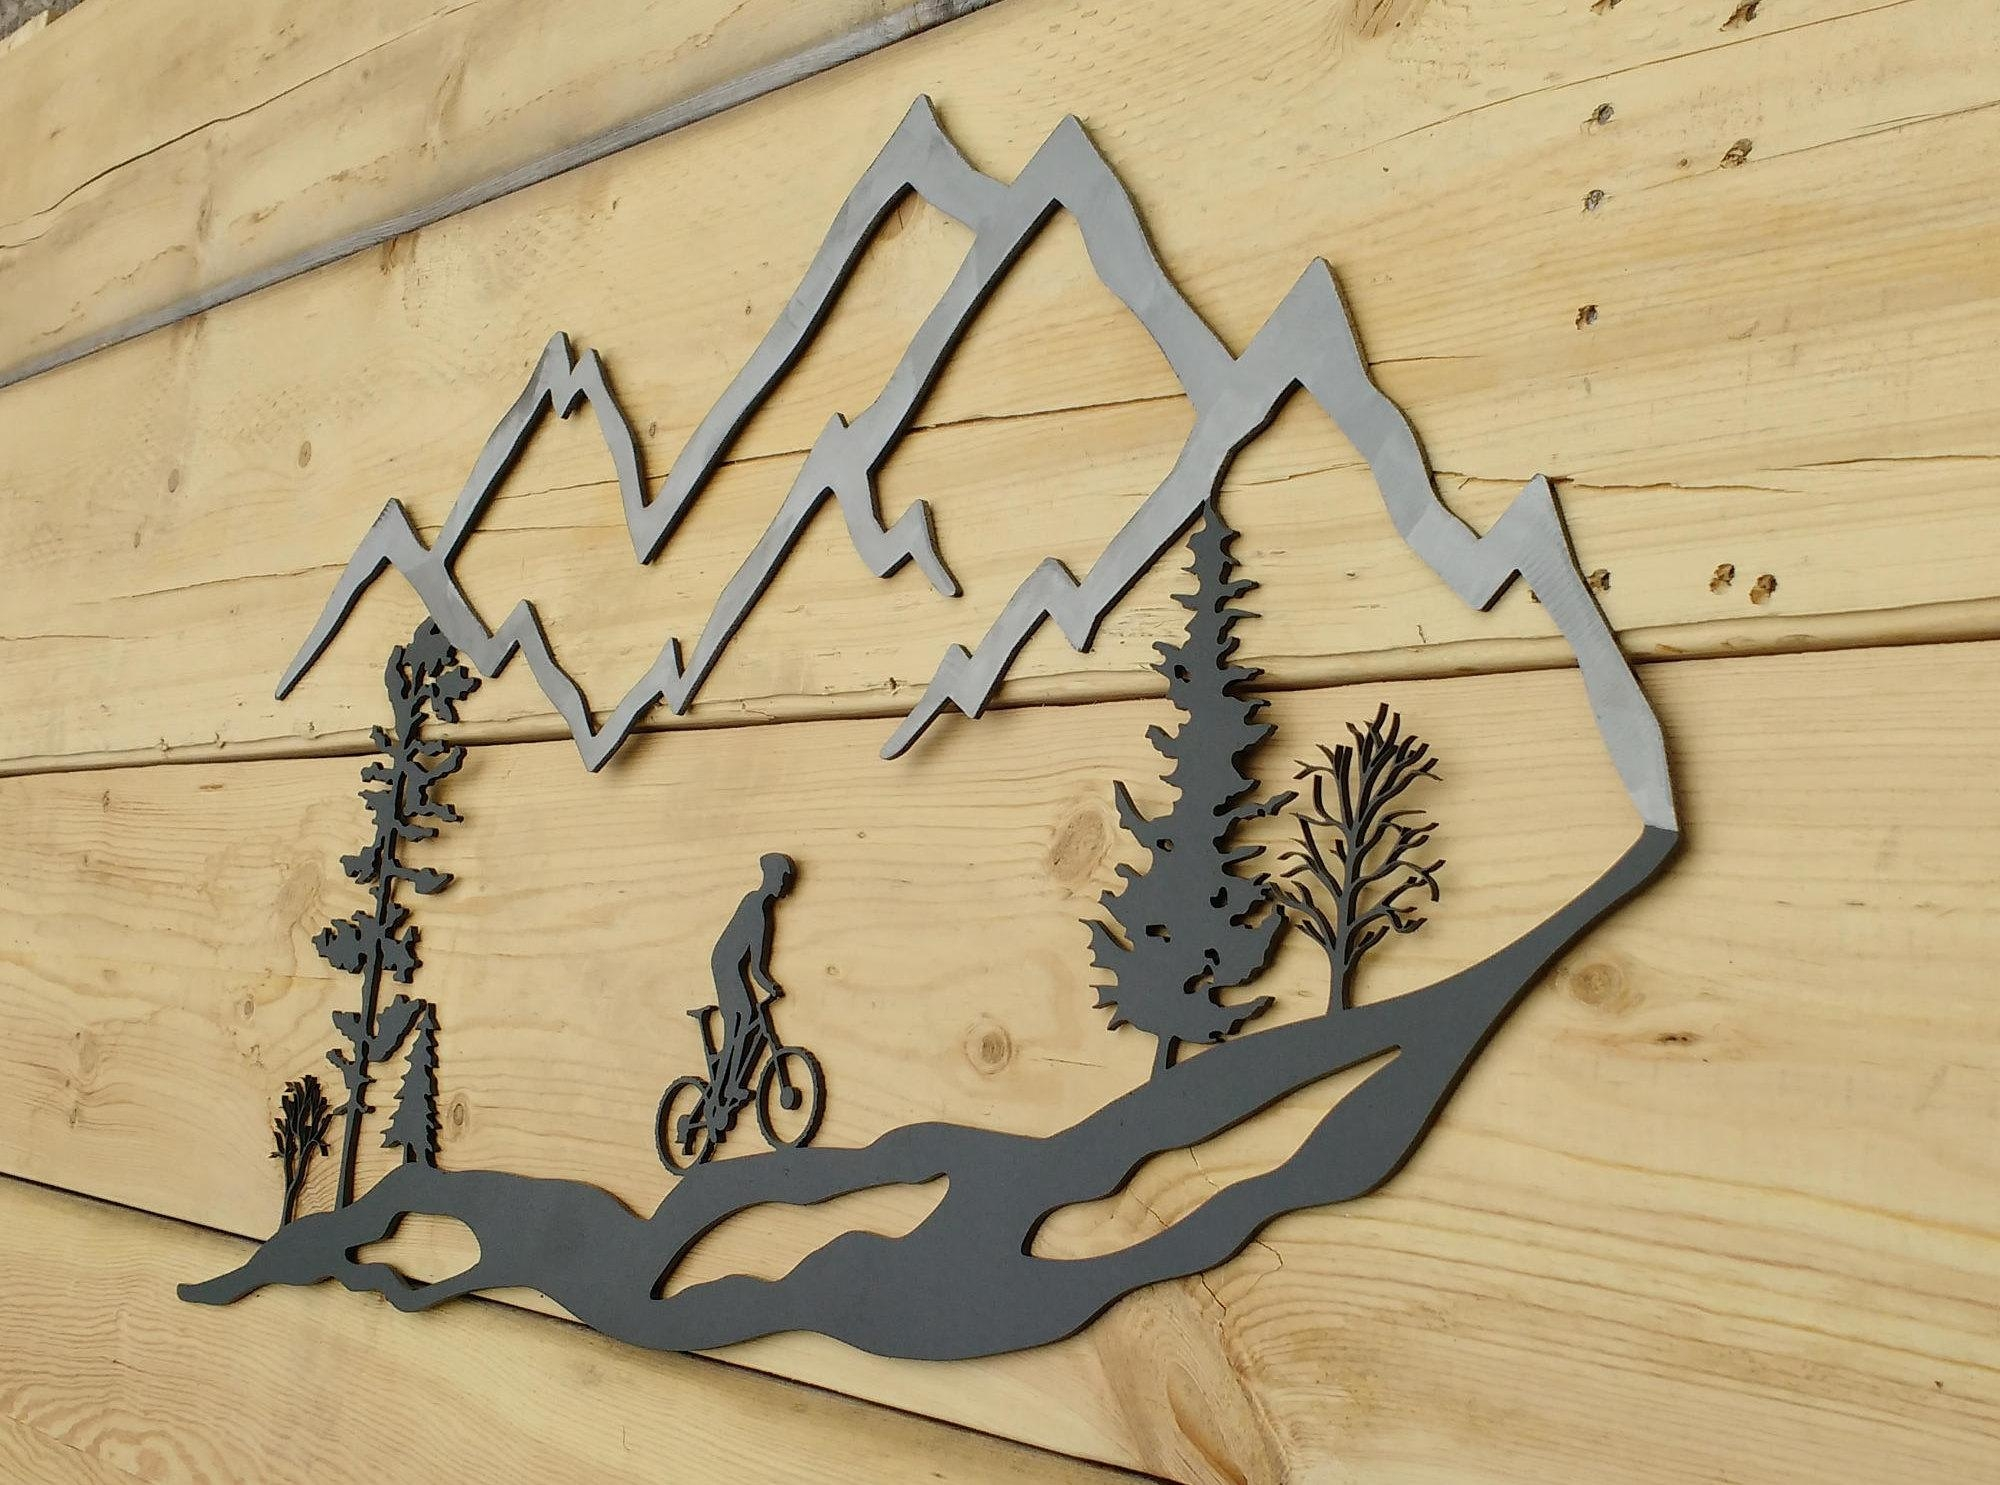 Metal Wall Art Mountain Bike Trees Mountain Bike Mtb Inside Bike Wall Art (Image 12 of 20)